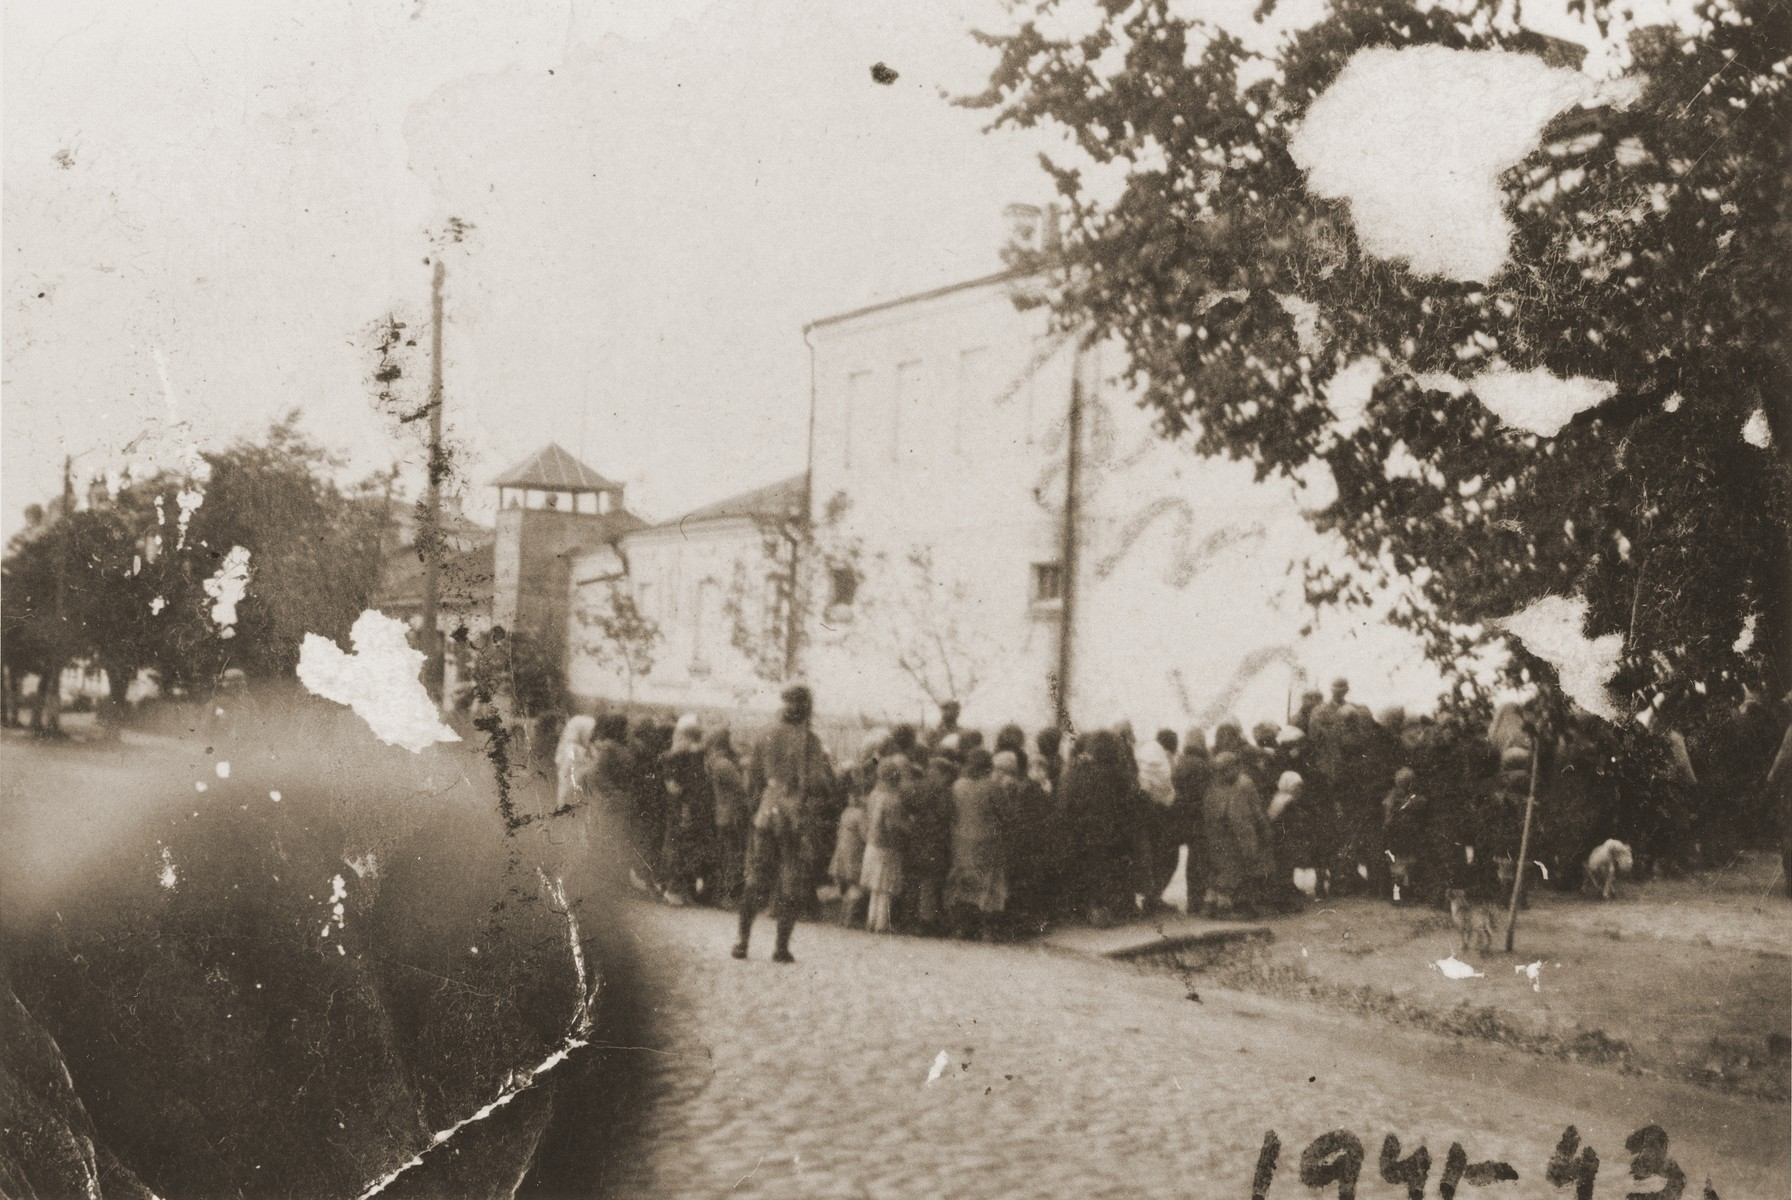 German guards oversee the assembly of Jews in Kamenets-Podolsk prior to their transportation to a site outside of the city for execution.